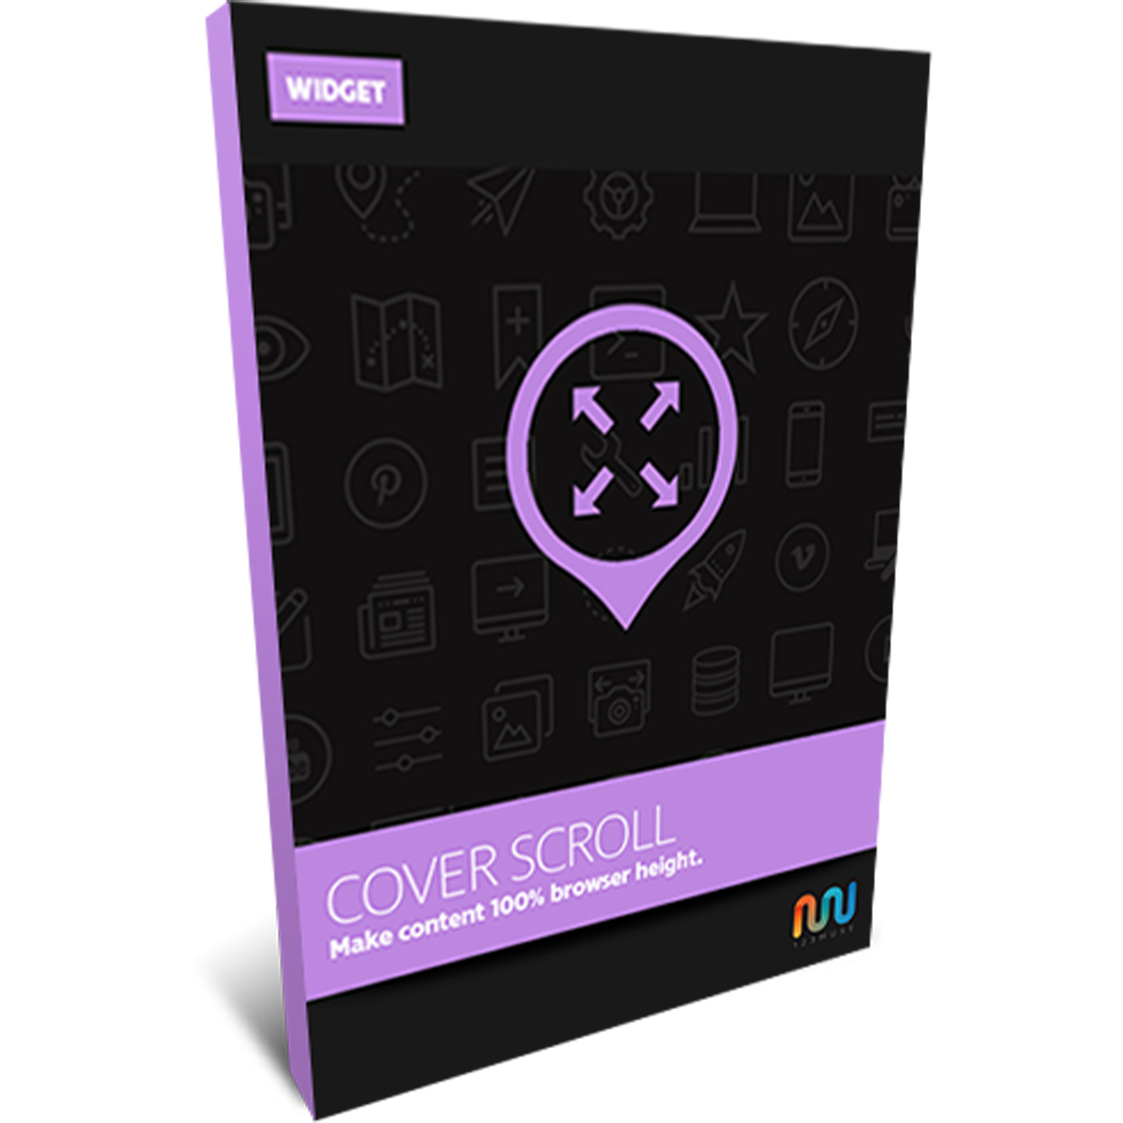 Cover Scroll